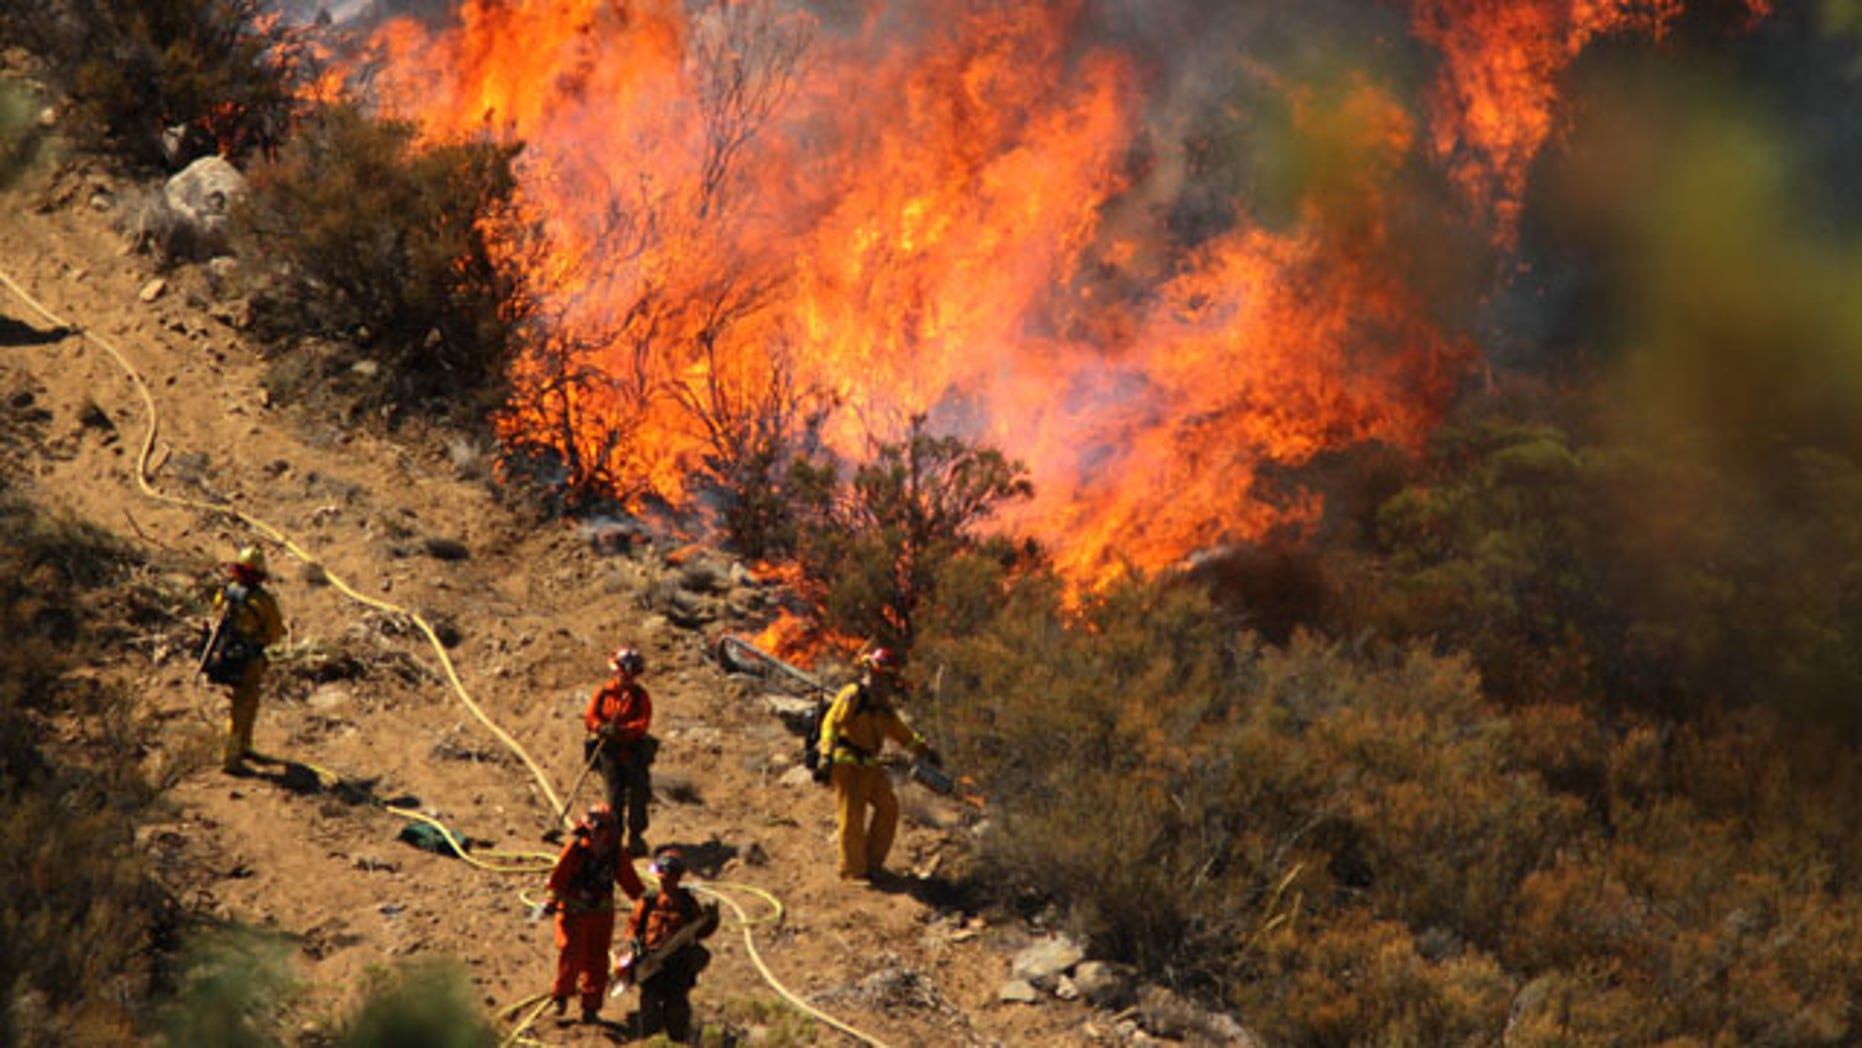 July 17, 2013: A female inmate hand crew from Puerta La Cruz and firefighters in an engine company with them set fire to reinforce the line to stave off part of the Mountain Fire burning up a hill toward them off Apple Canyon Road near Lake Hemet, Calif. Officials say the wildfire in the mountains west of Palm Springs has destroyed three houses and three mobile homes and is threatening dozens more residences. (AP Photo/The Desert Sun, Crystal Chatham)